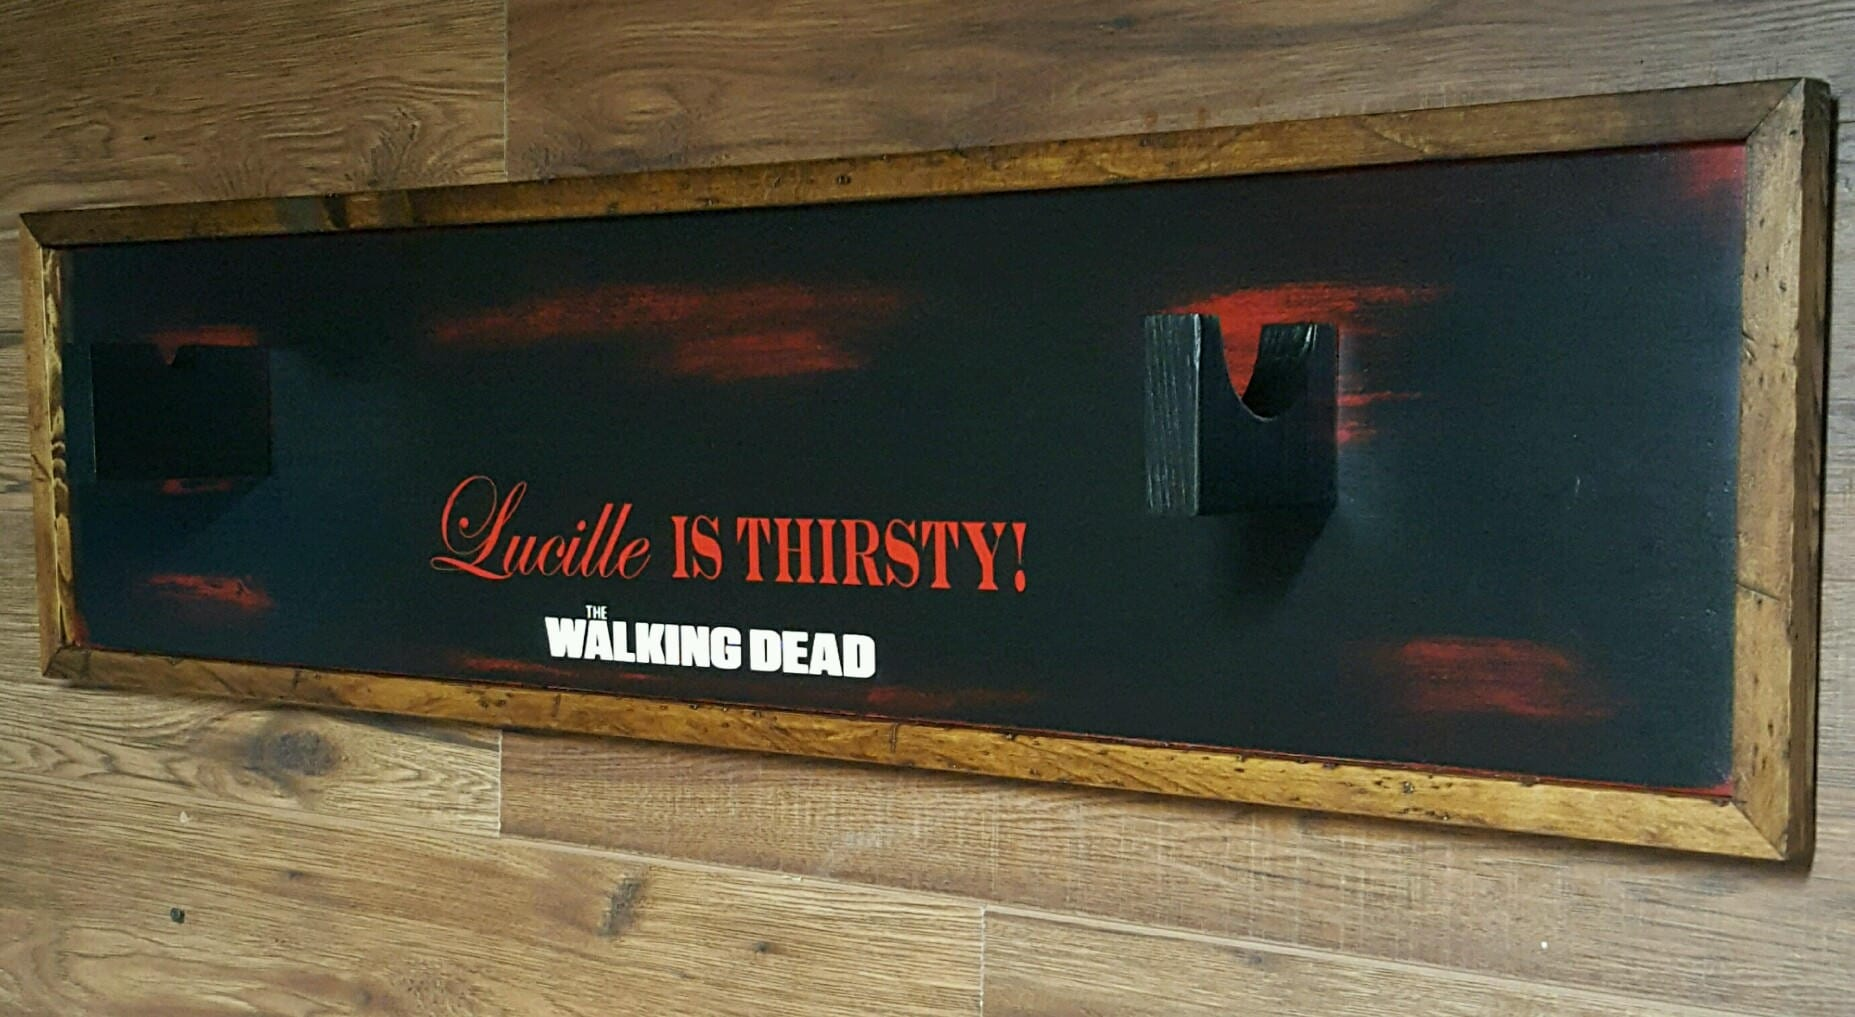 Watch Lucille Wall video